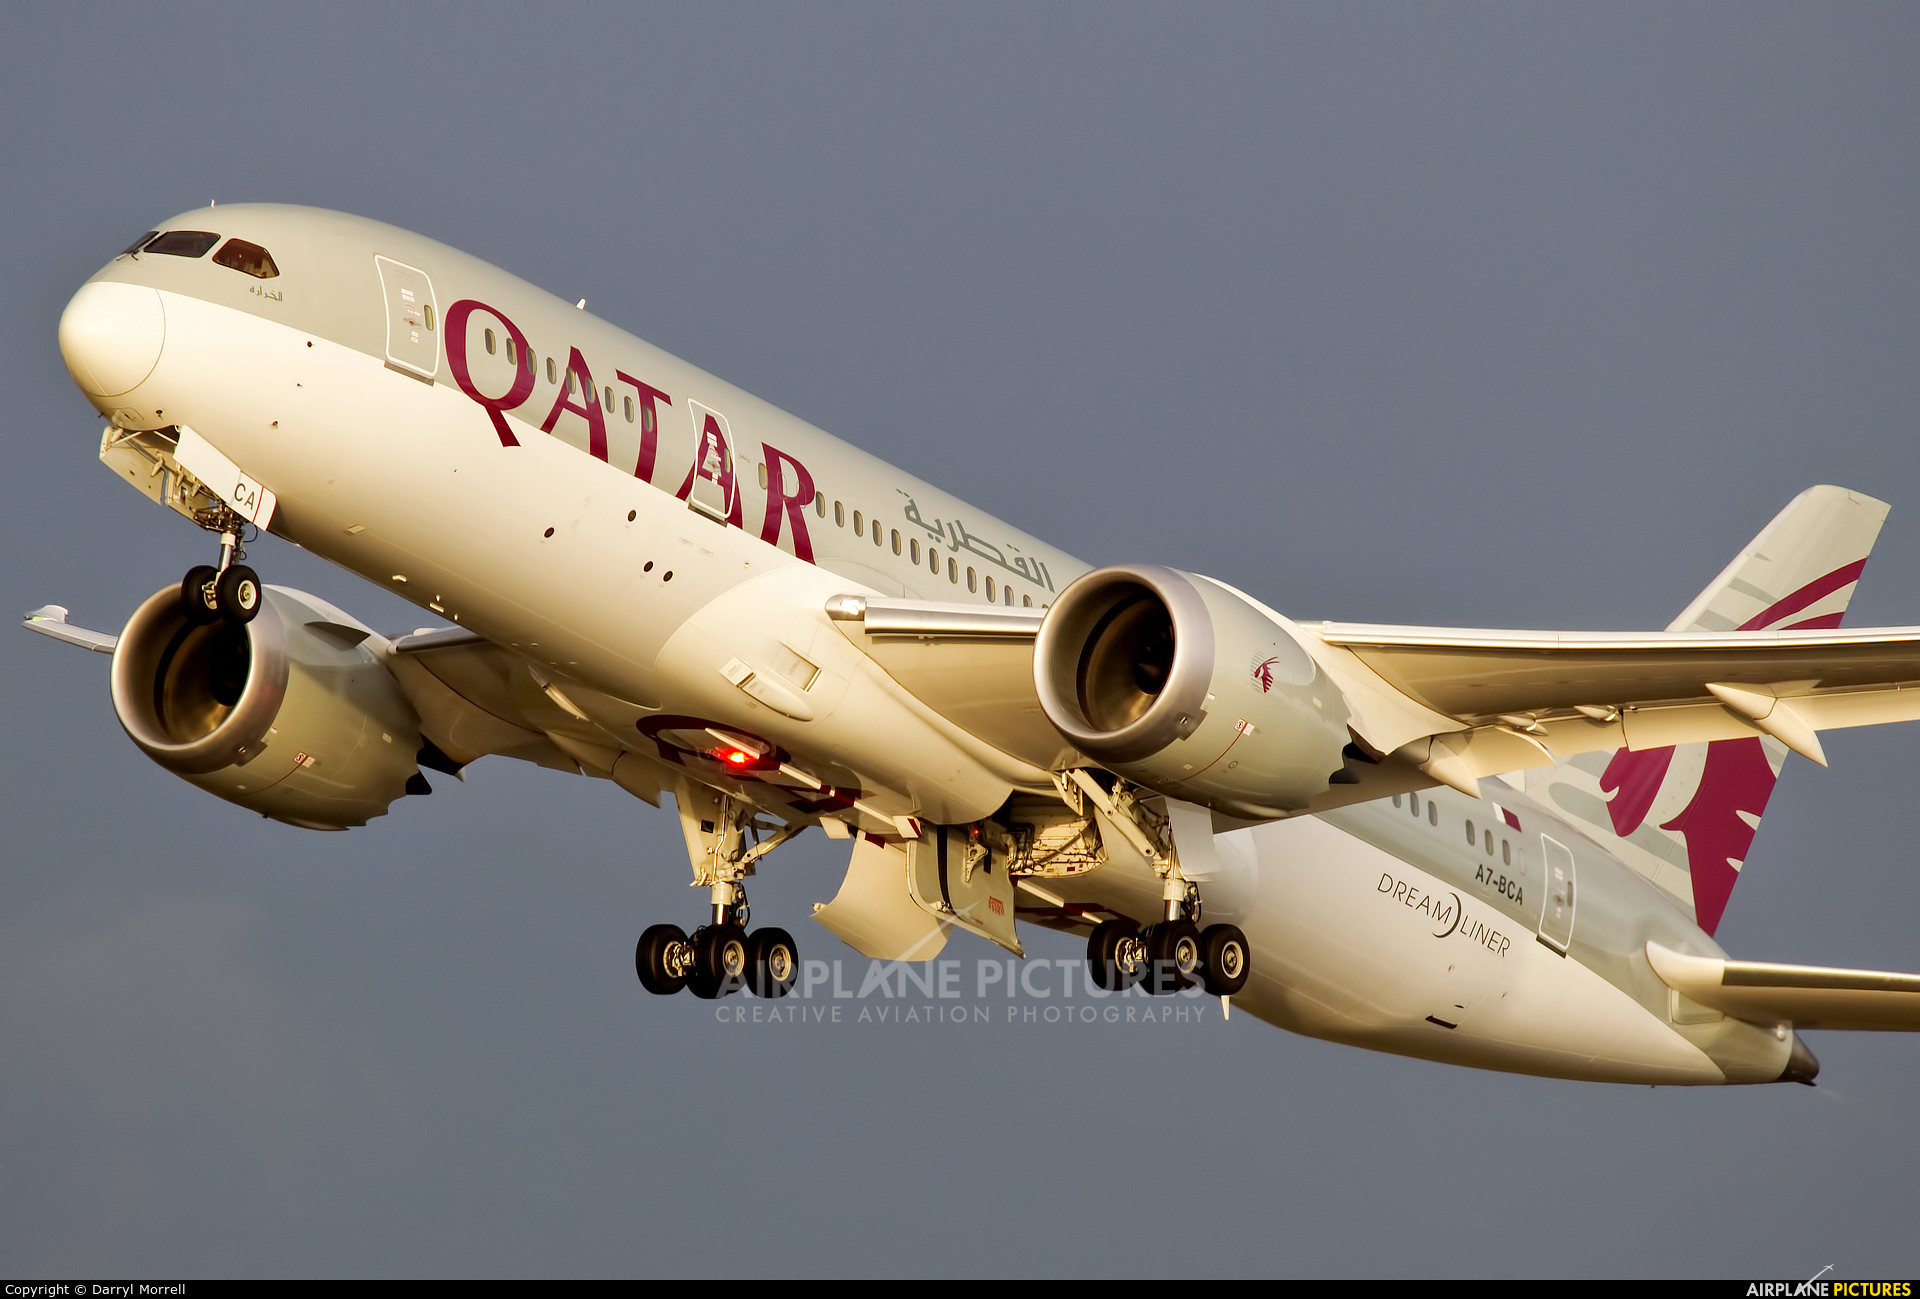 Qatar Airways A7-BCA aircraft at London - Heathrow